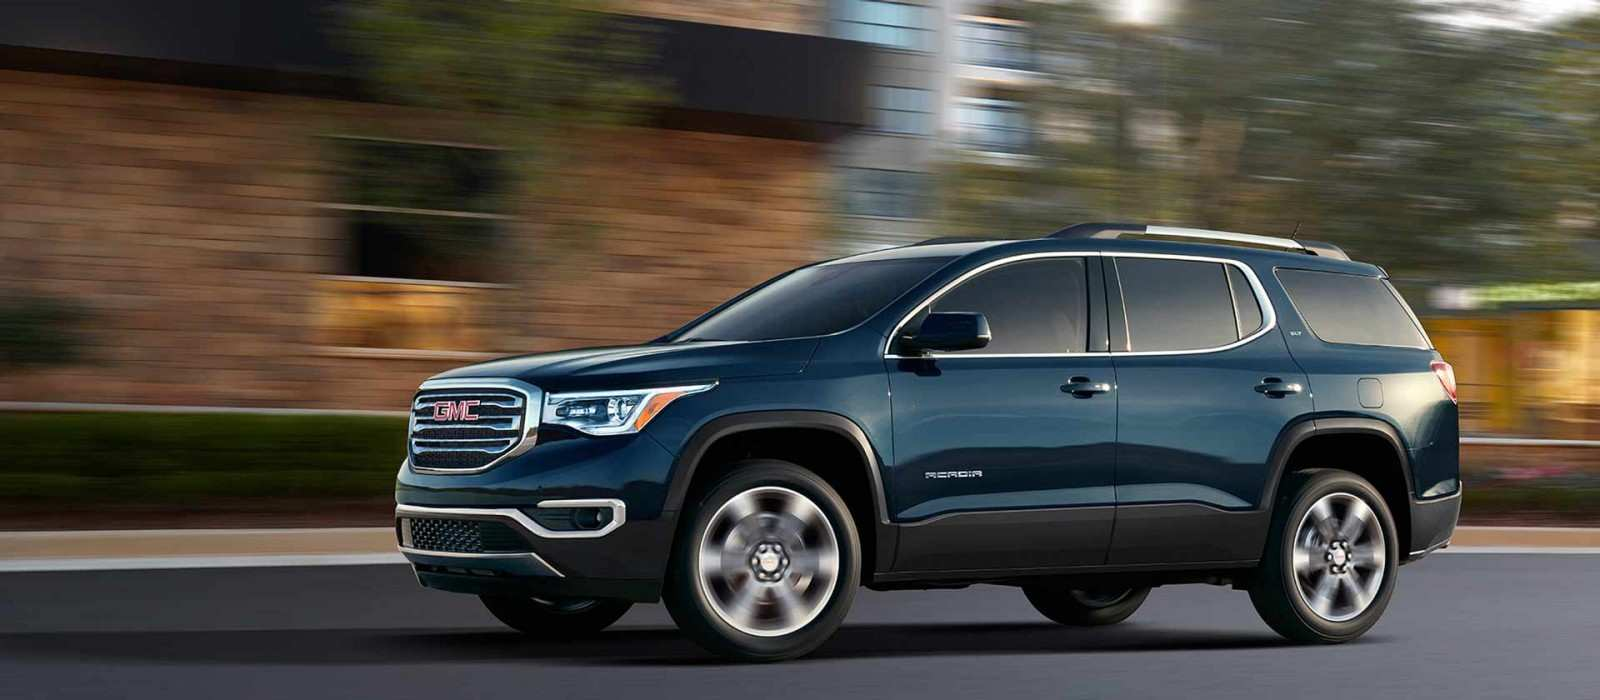 65 Best Review 2019 Buick Enclave Towing Capacity Specs Reviews with 2019 Buick Enclave Towing Capacity Specs